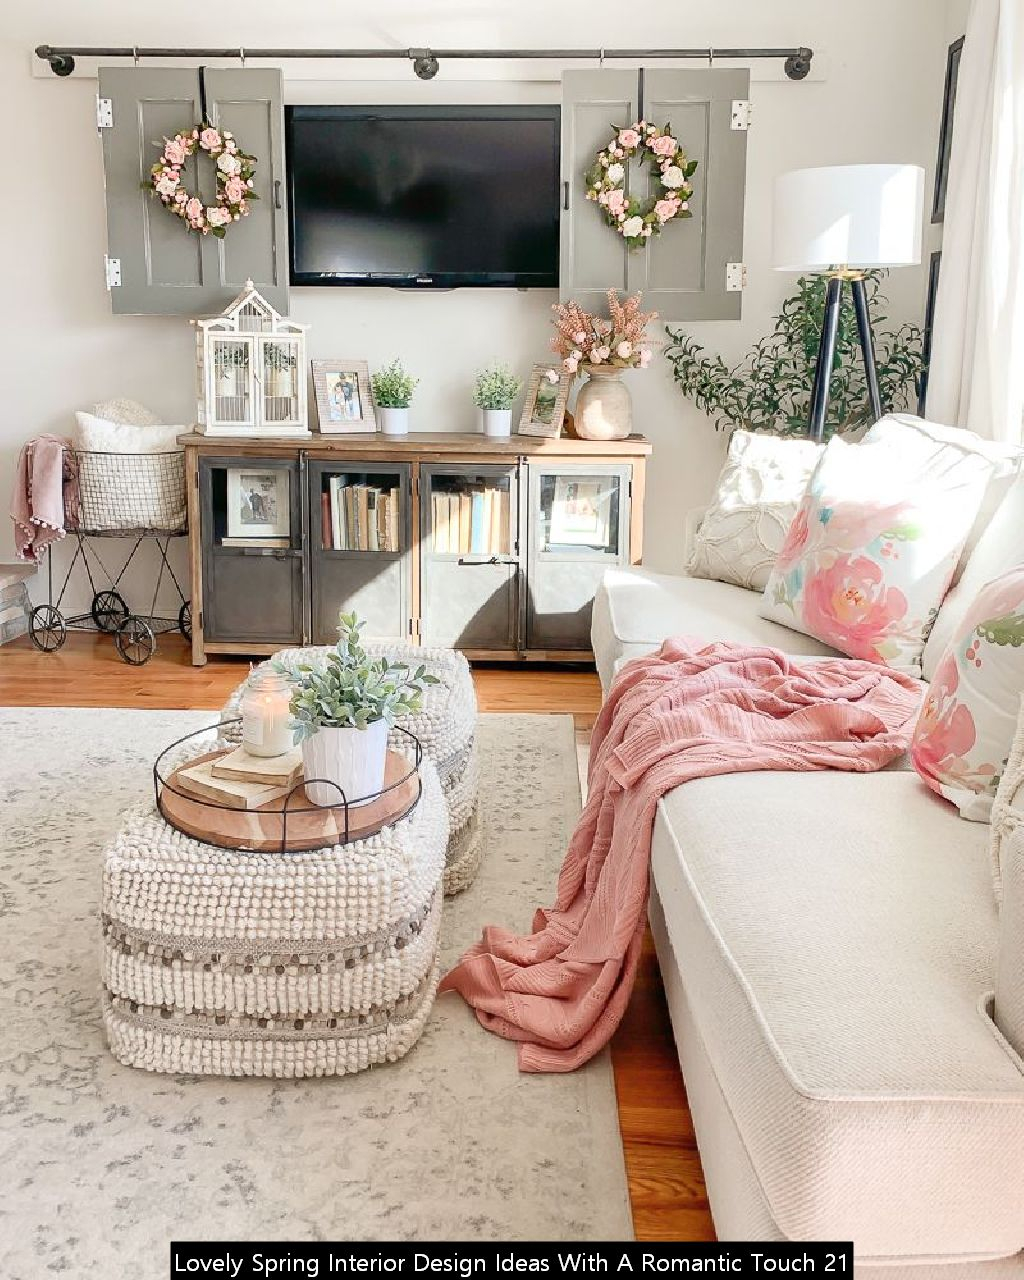 Lovely Spring Interior Design Ideas With A Romantic Touch 21